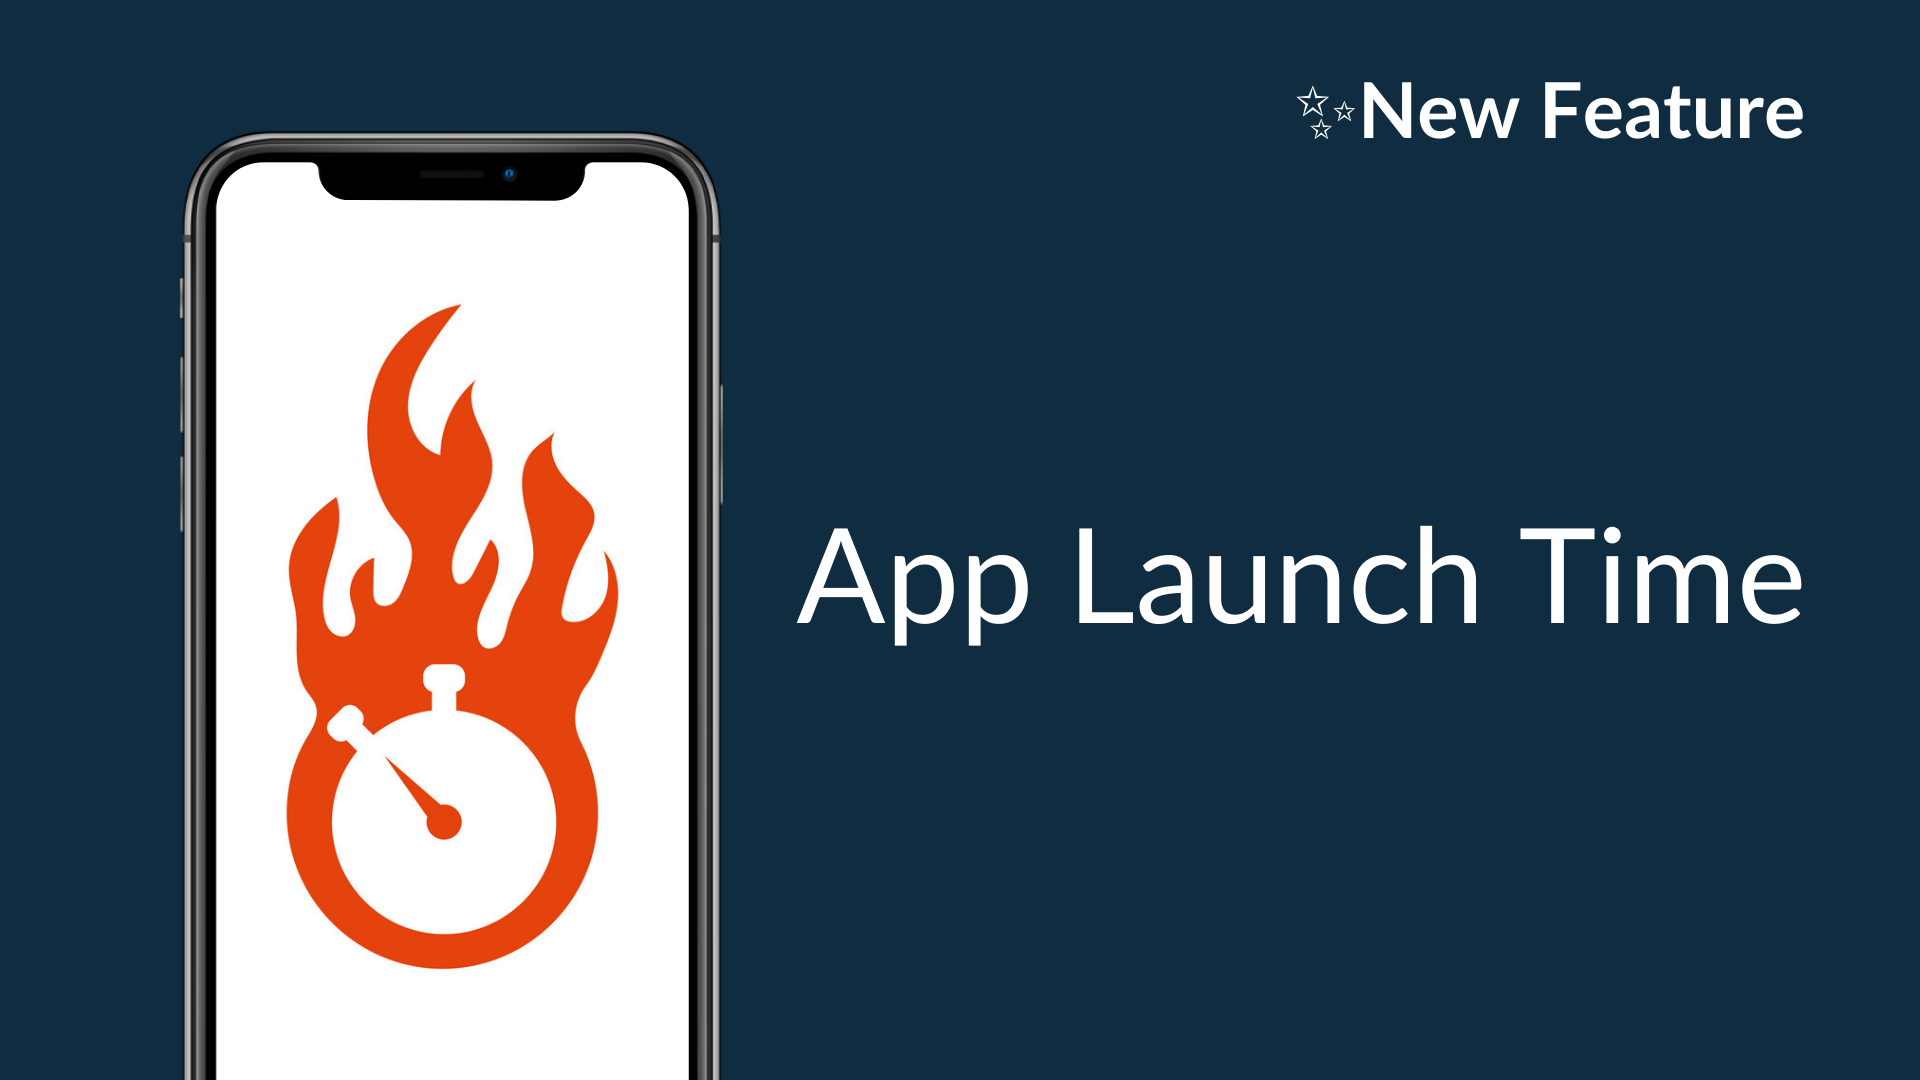 New Feature: App Launch Time